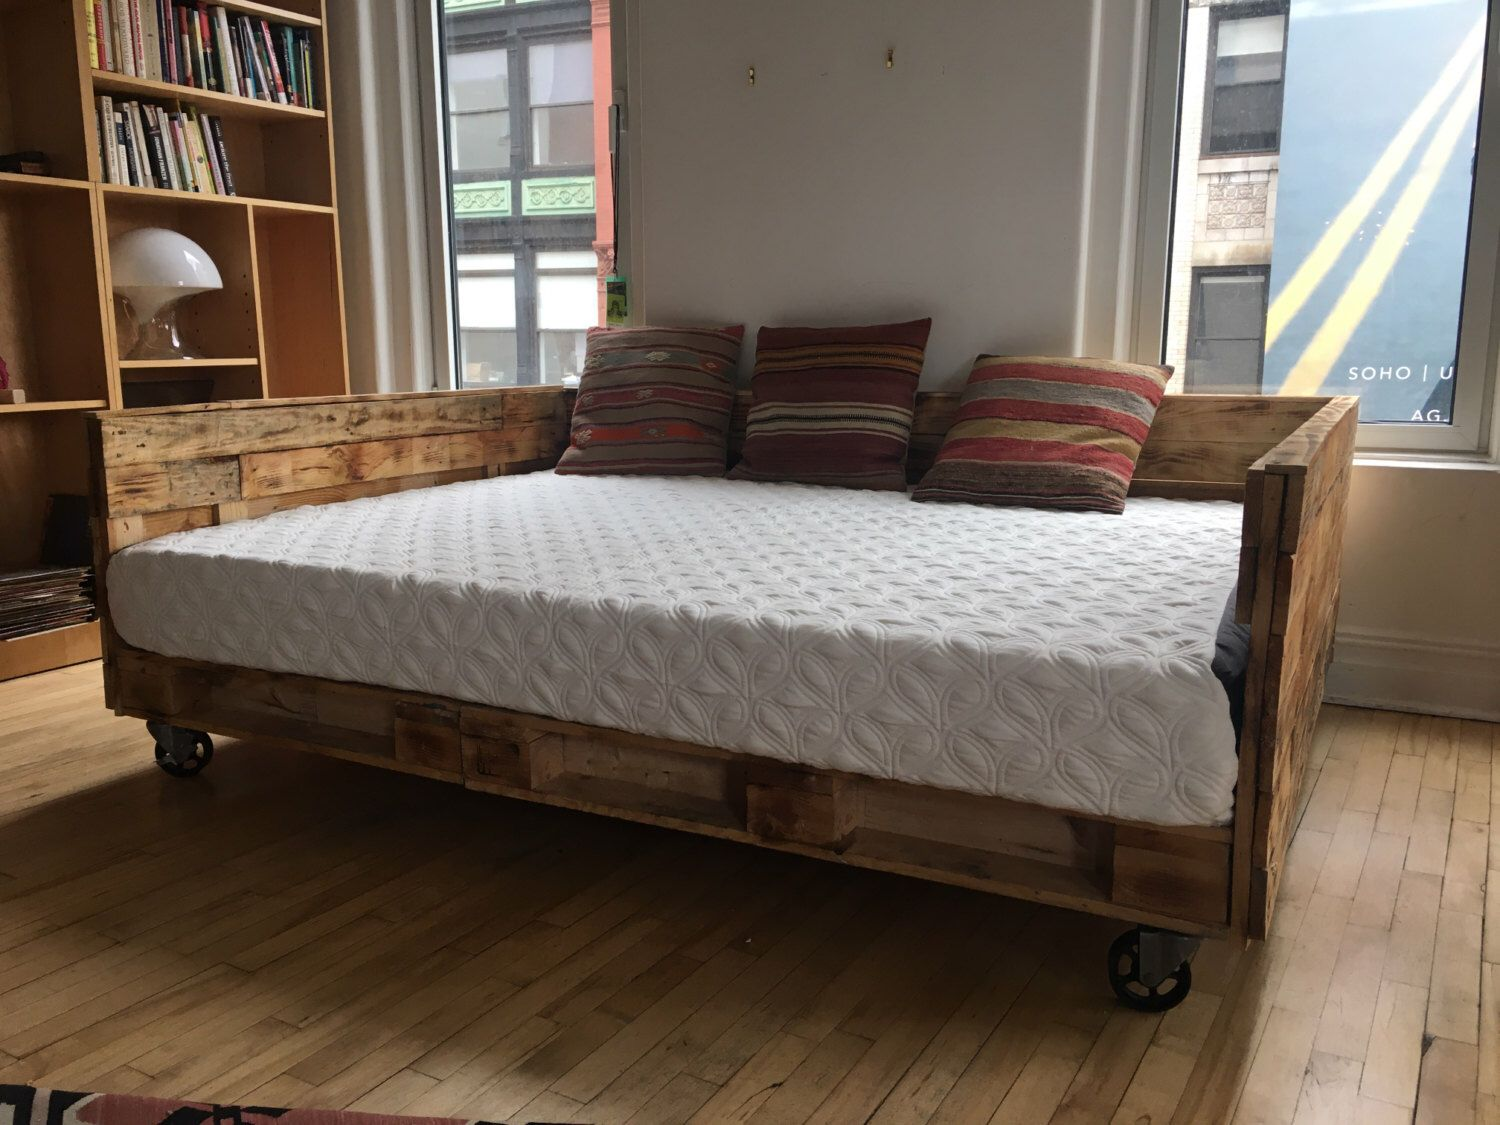 Industrial Pallet Daybed on Wheels Available in Queen